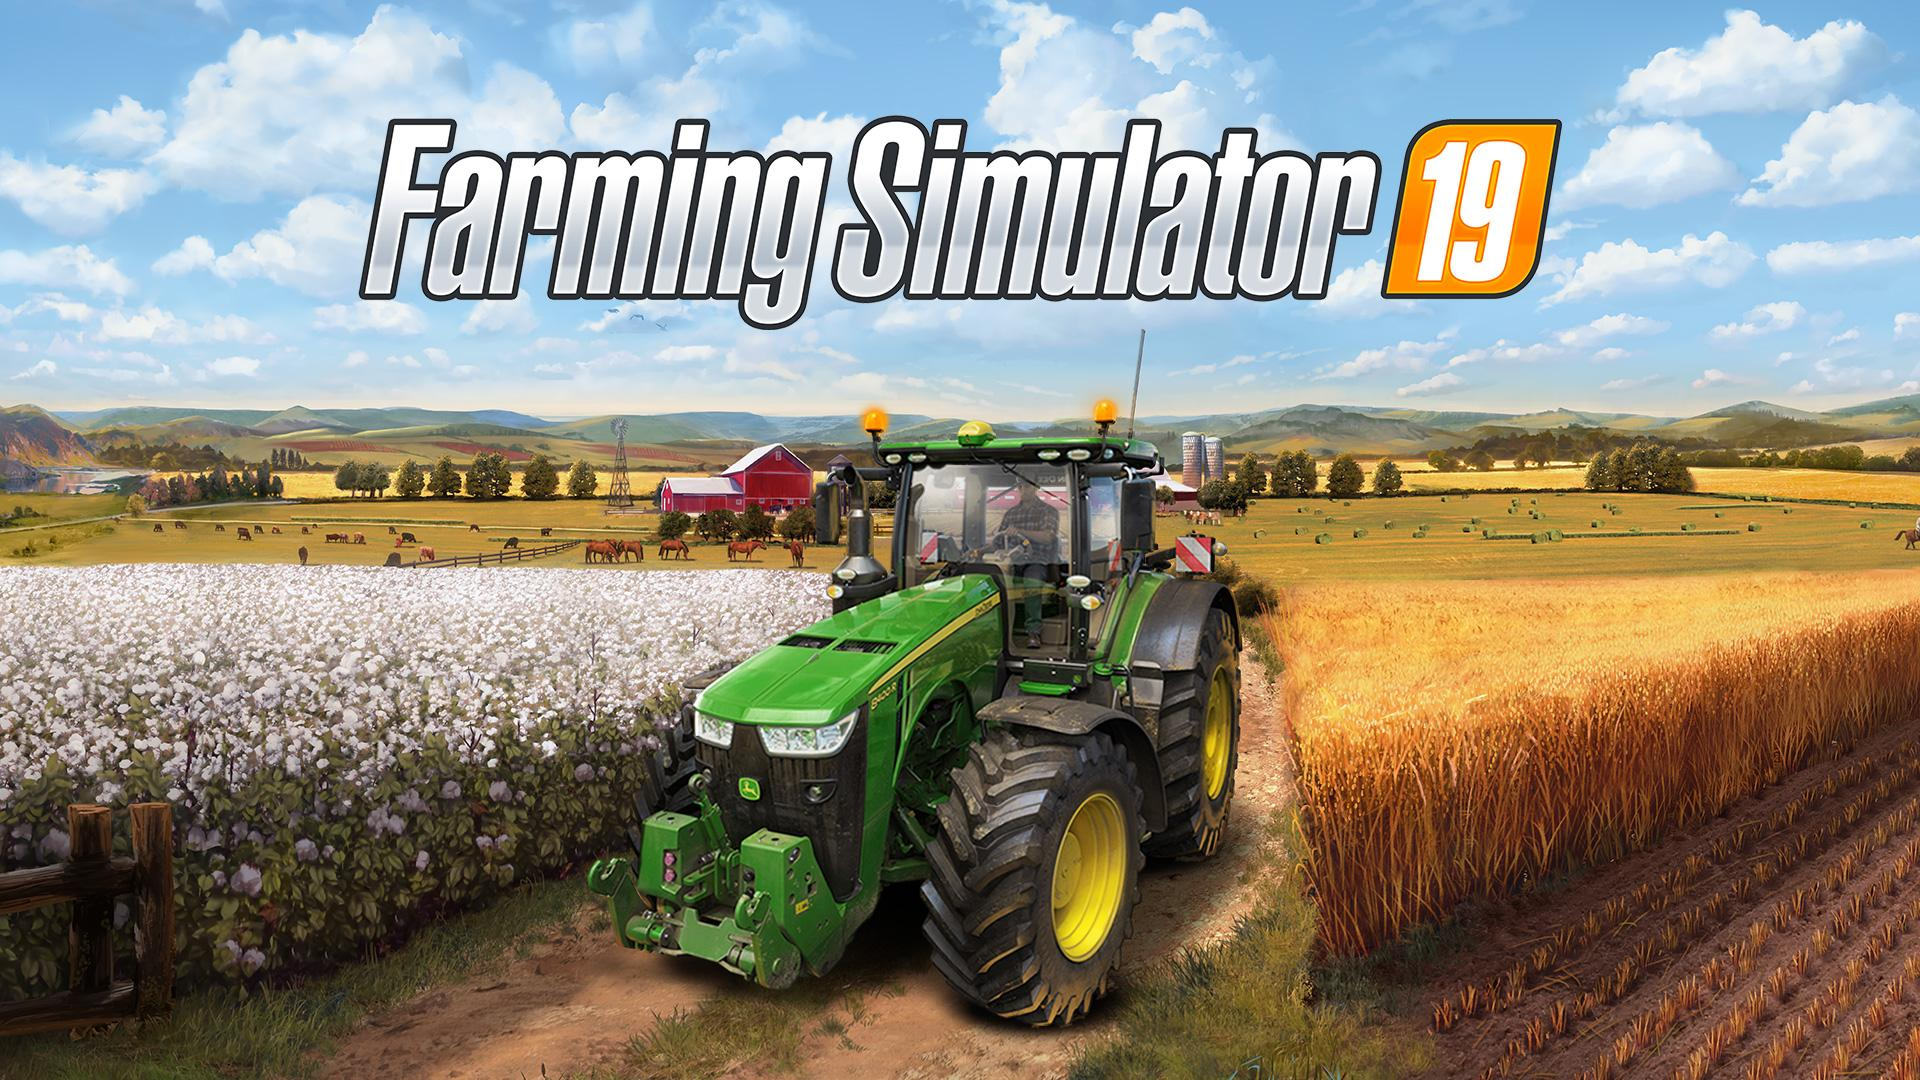 Farming Simulator 19 GRATIS na Epic Games